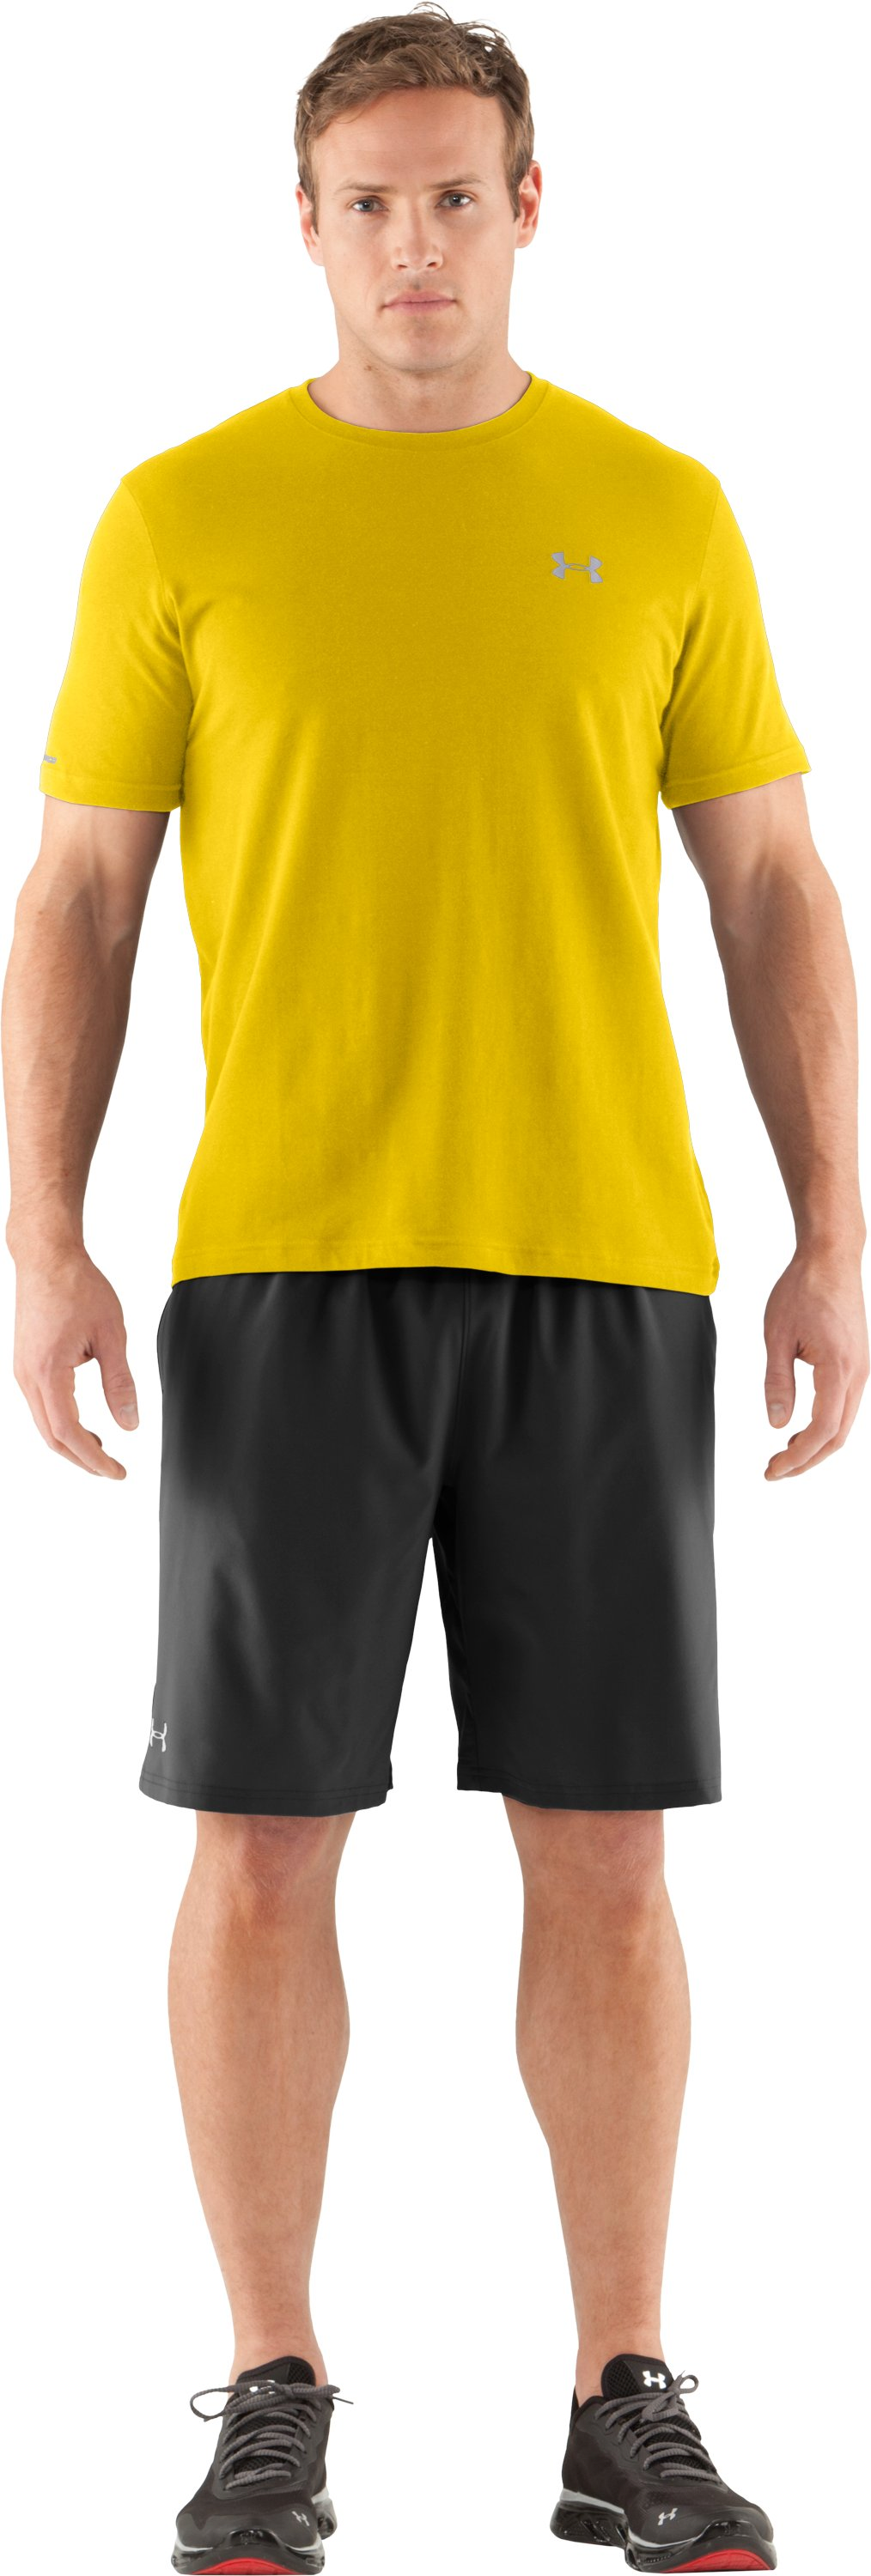 Men's Charged Cotton® T-Shirt, Taxi